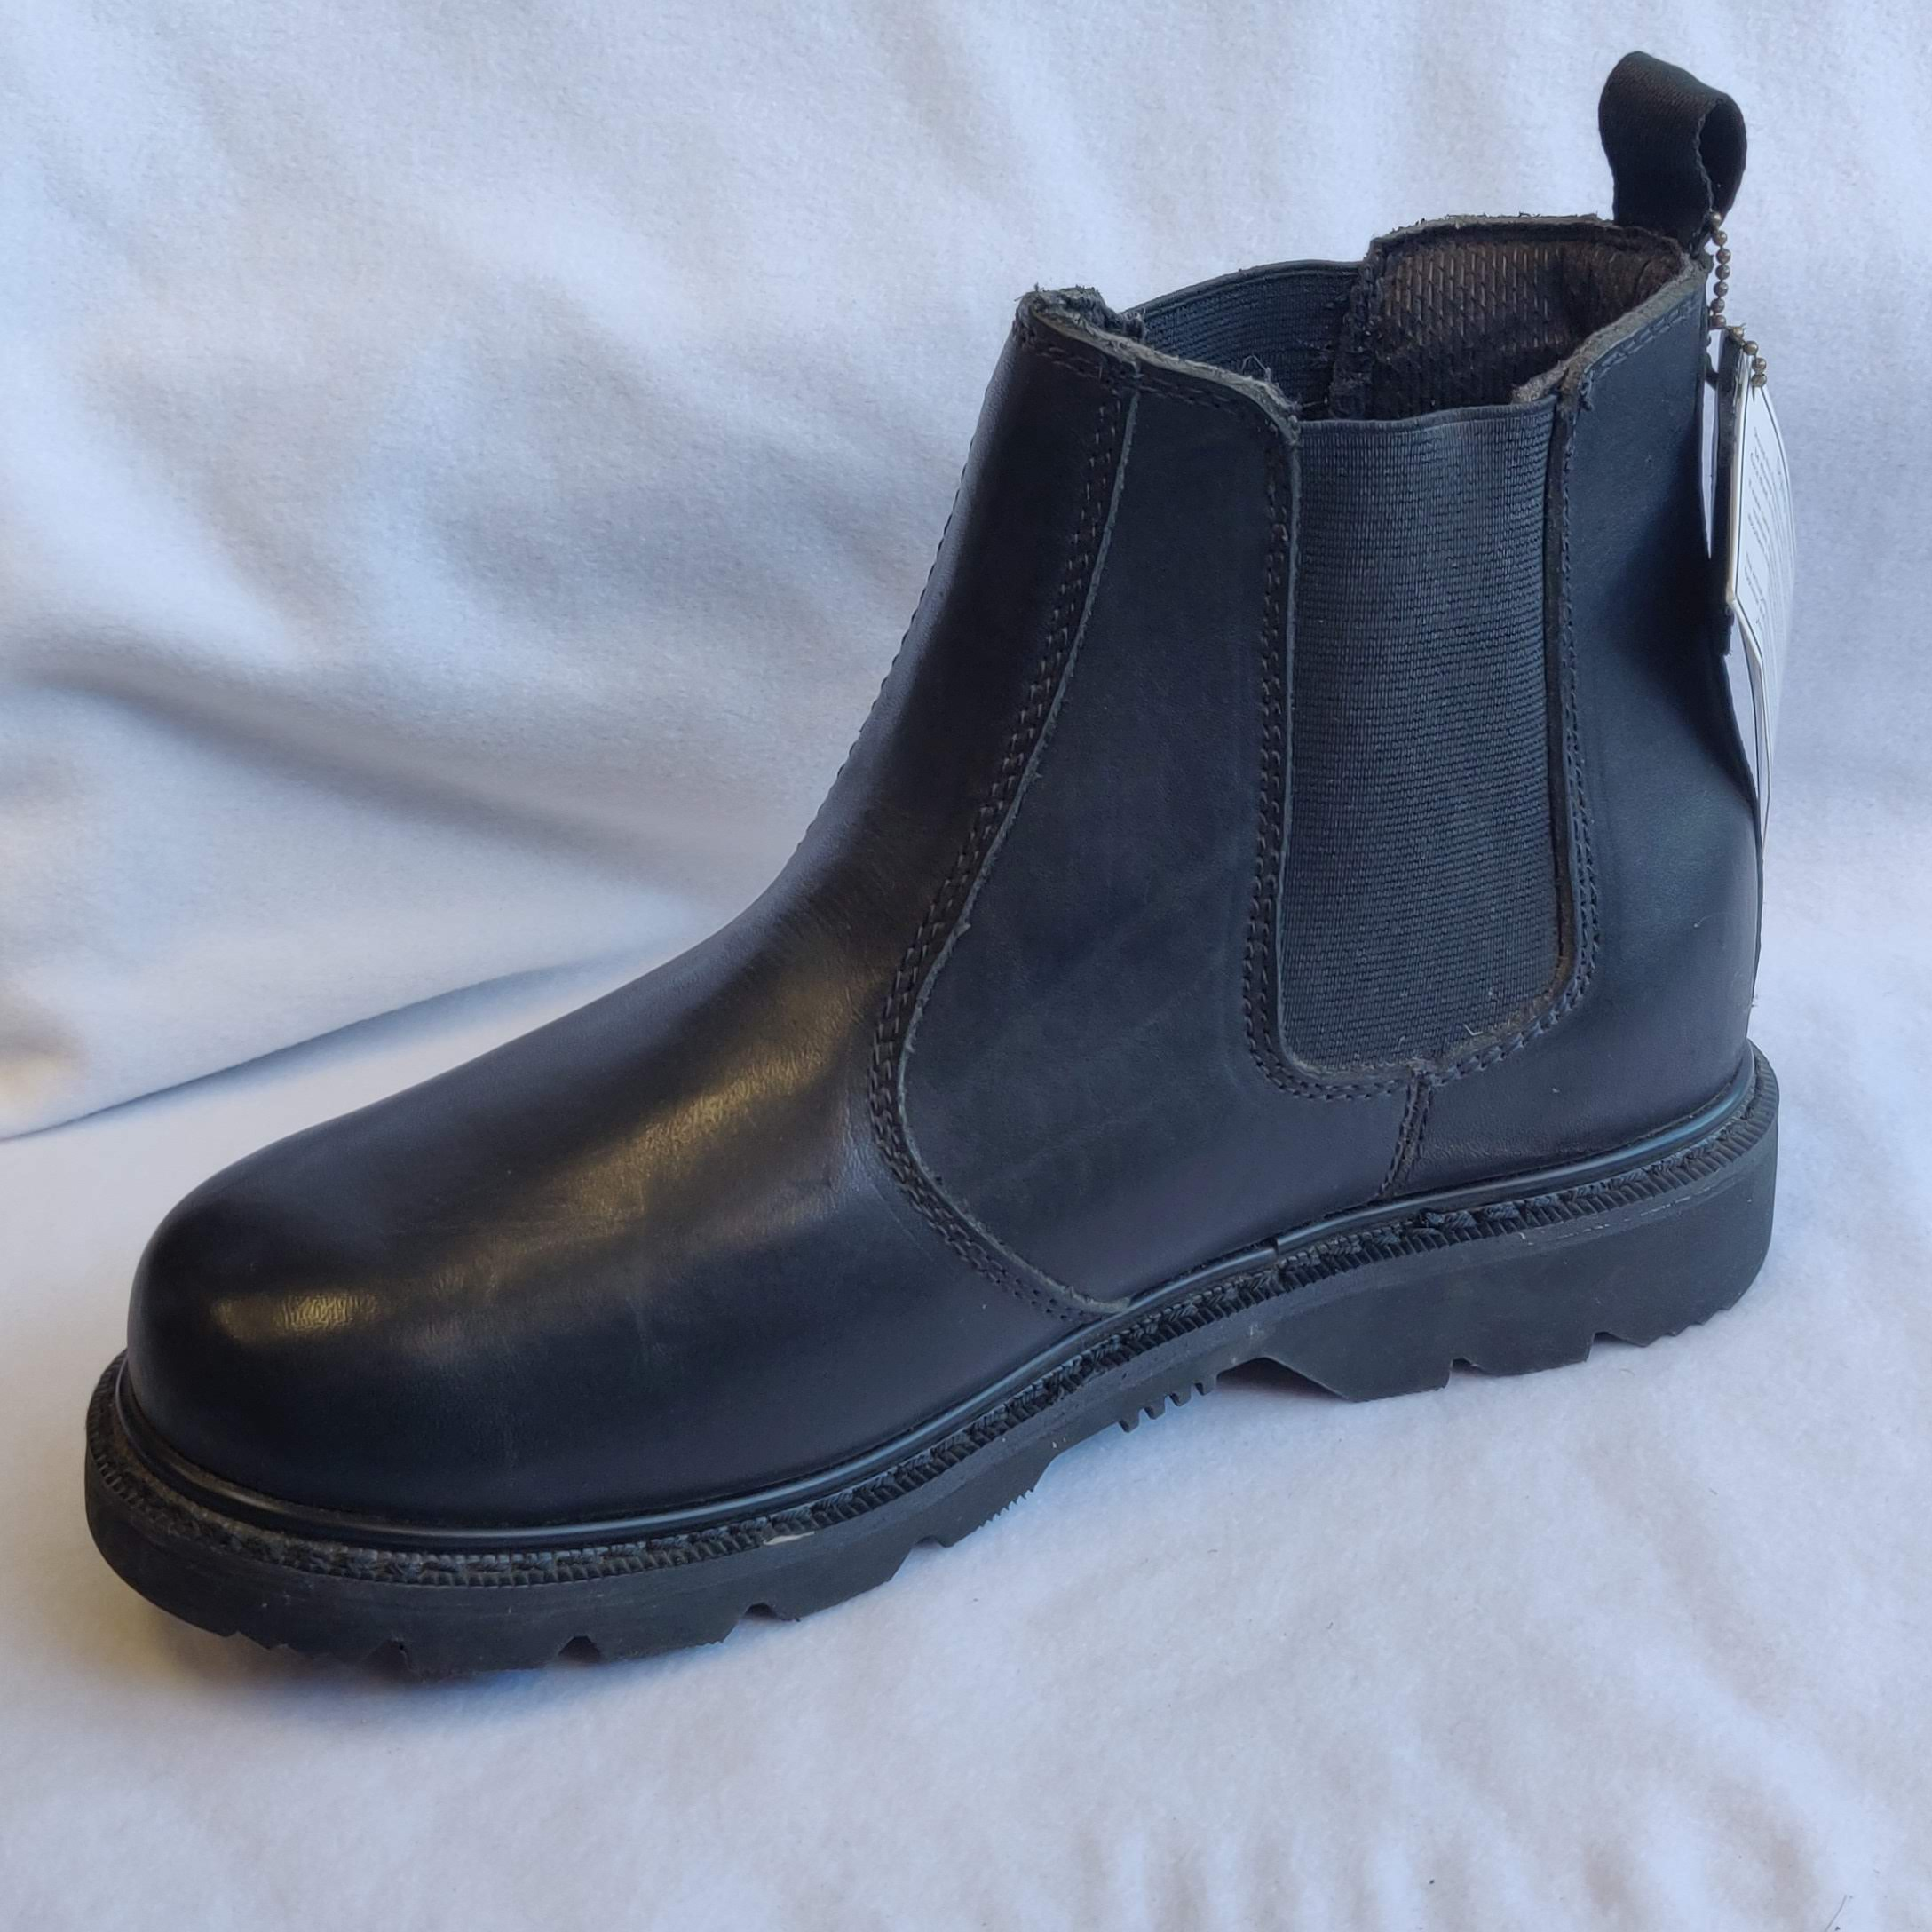 Gents Grafters Black Leather Chelsea Boots (7)